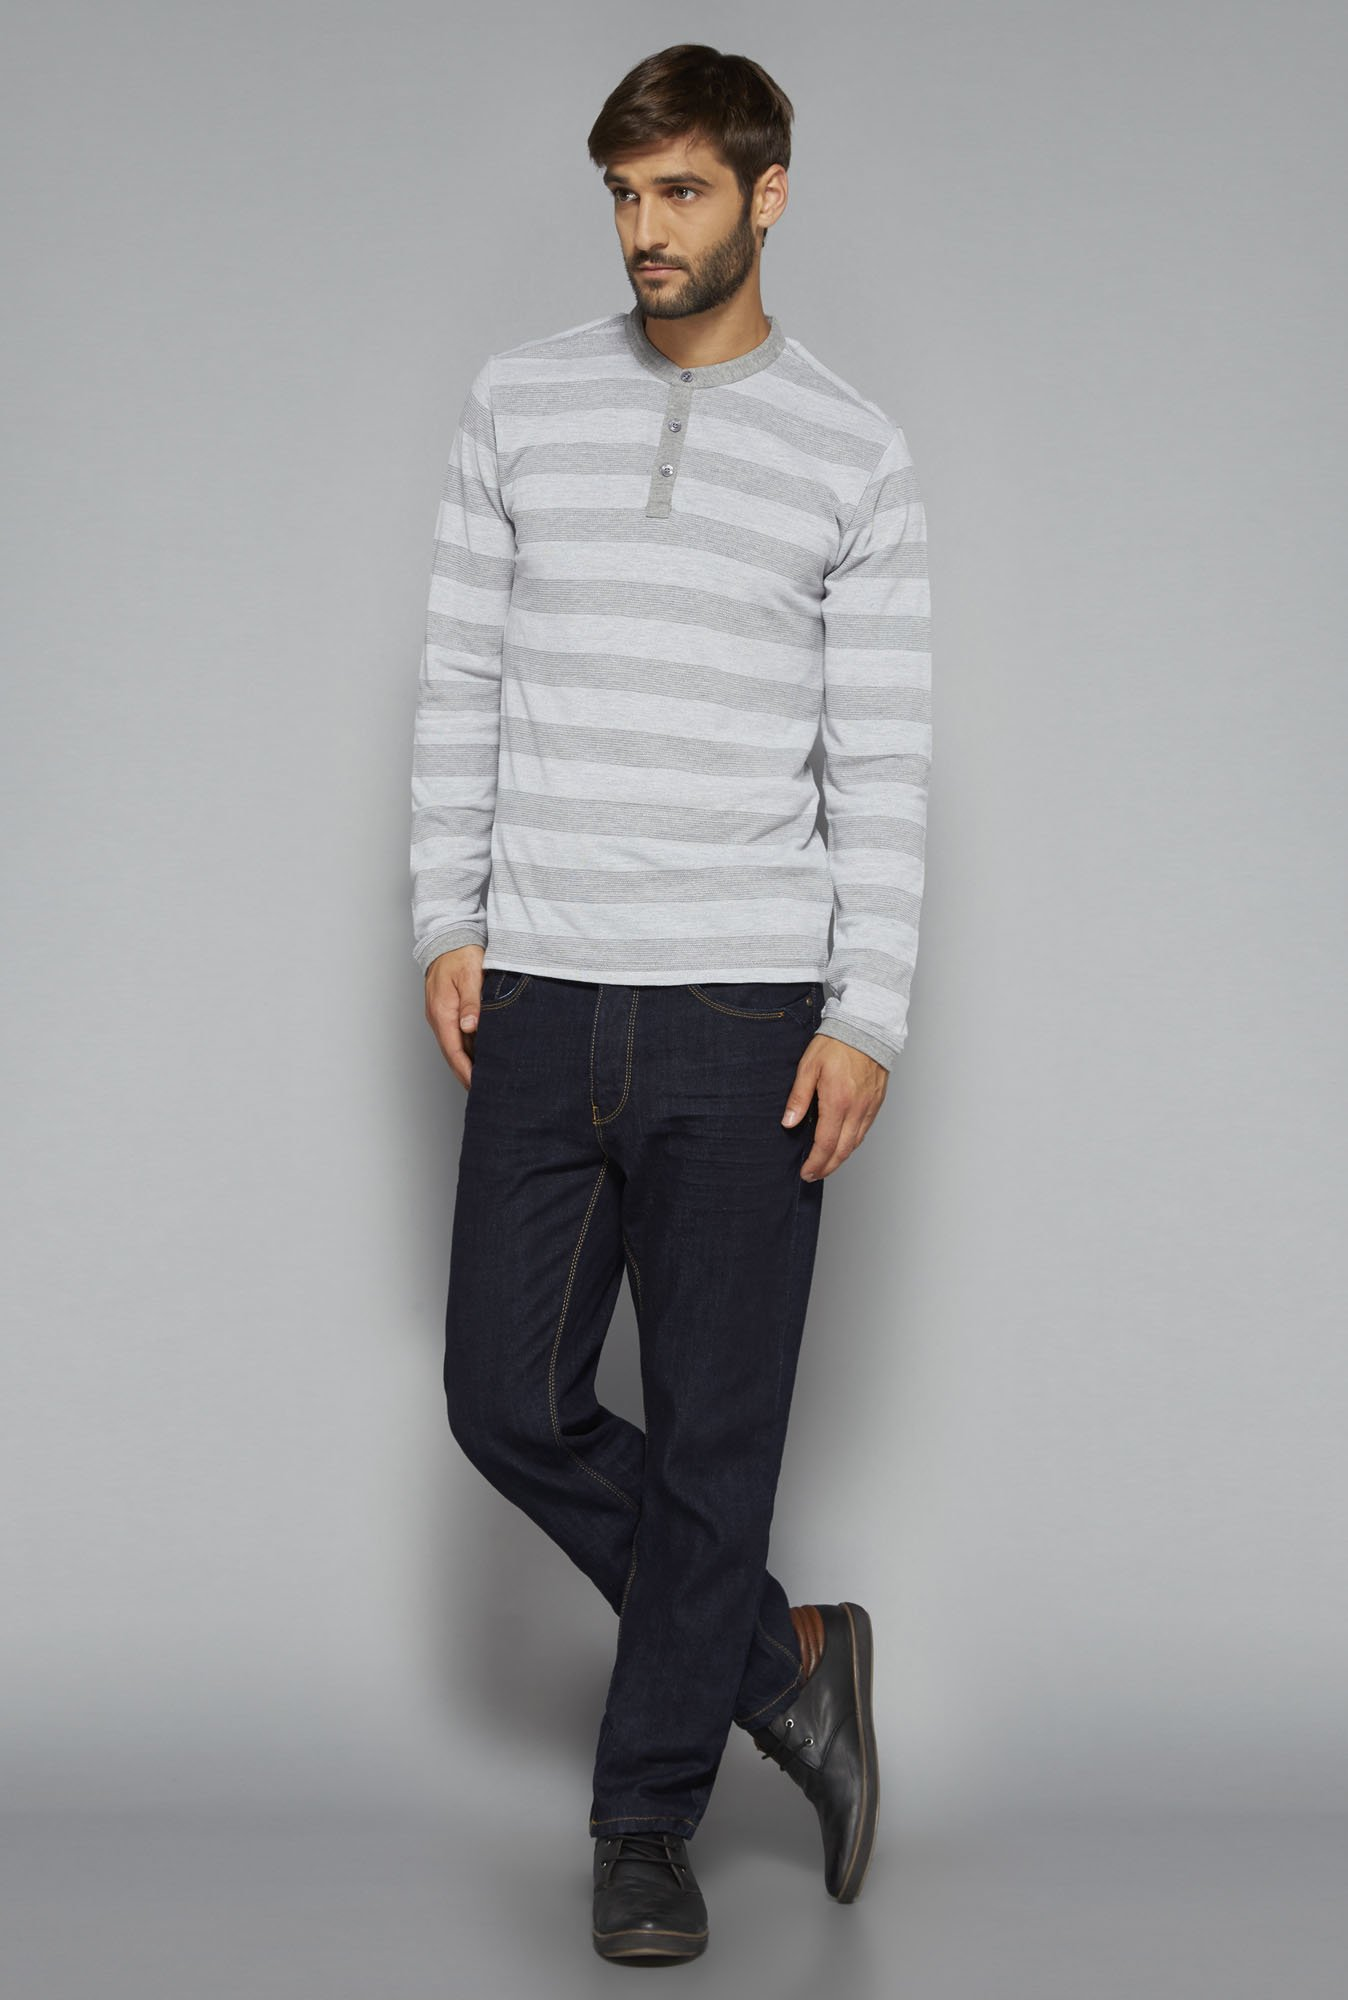 Ascot by Westside Grey Striped T Shirt